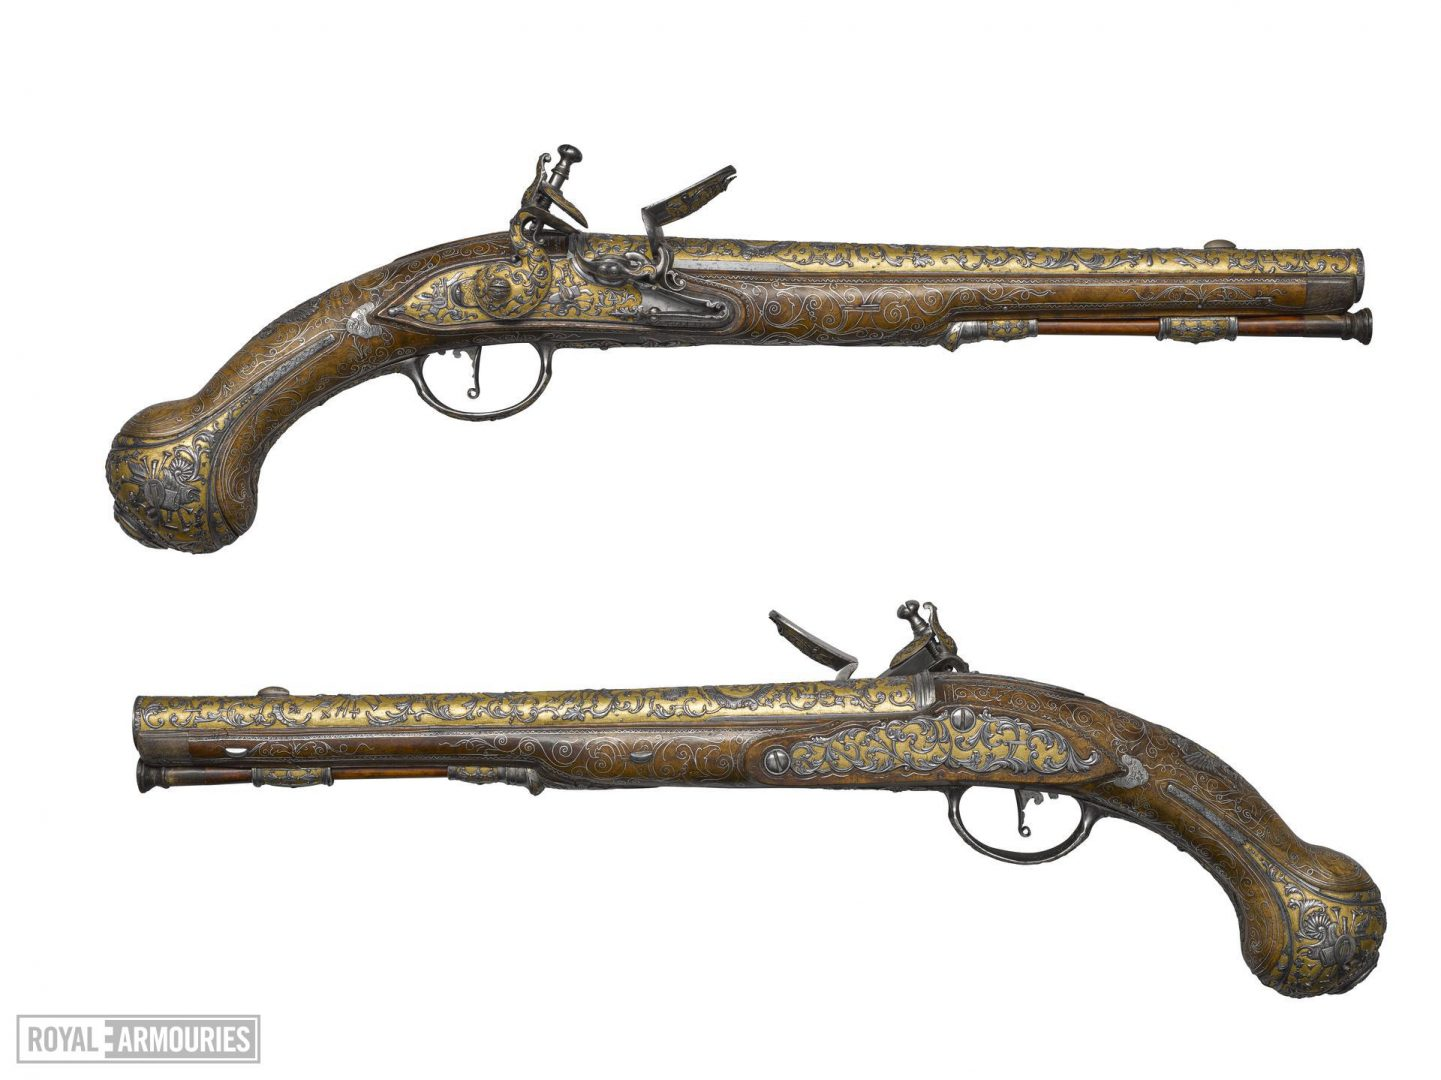 A pair of highly decorated gold sporting pistols